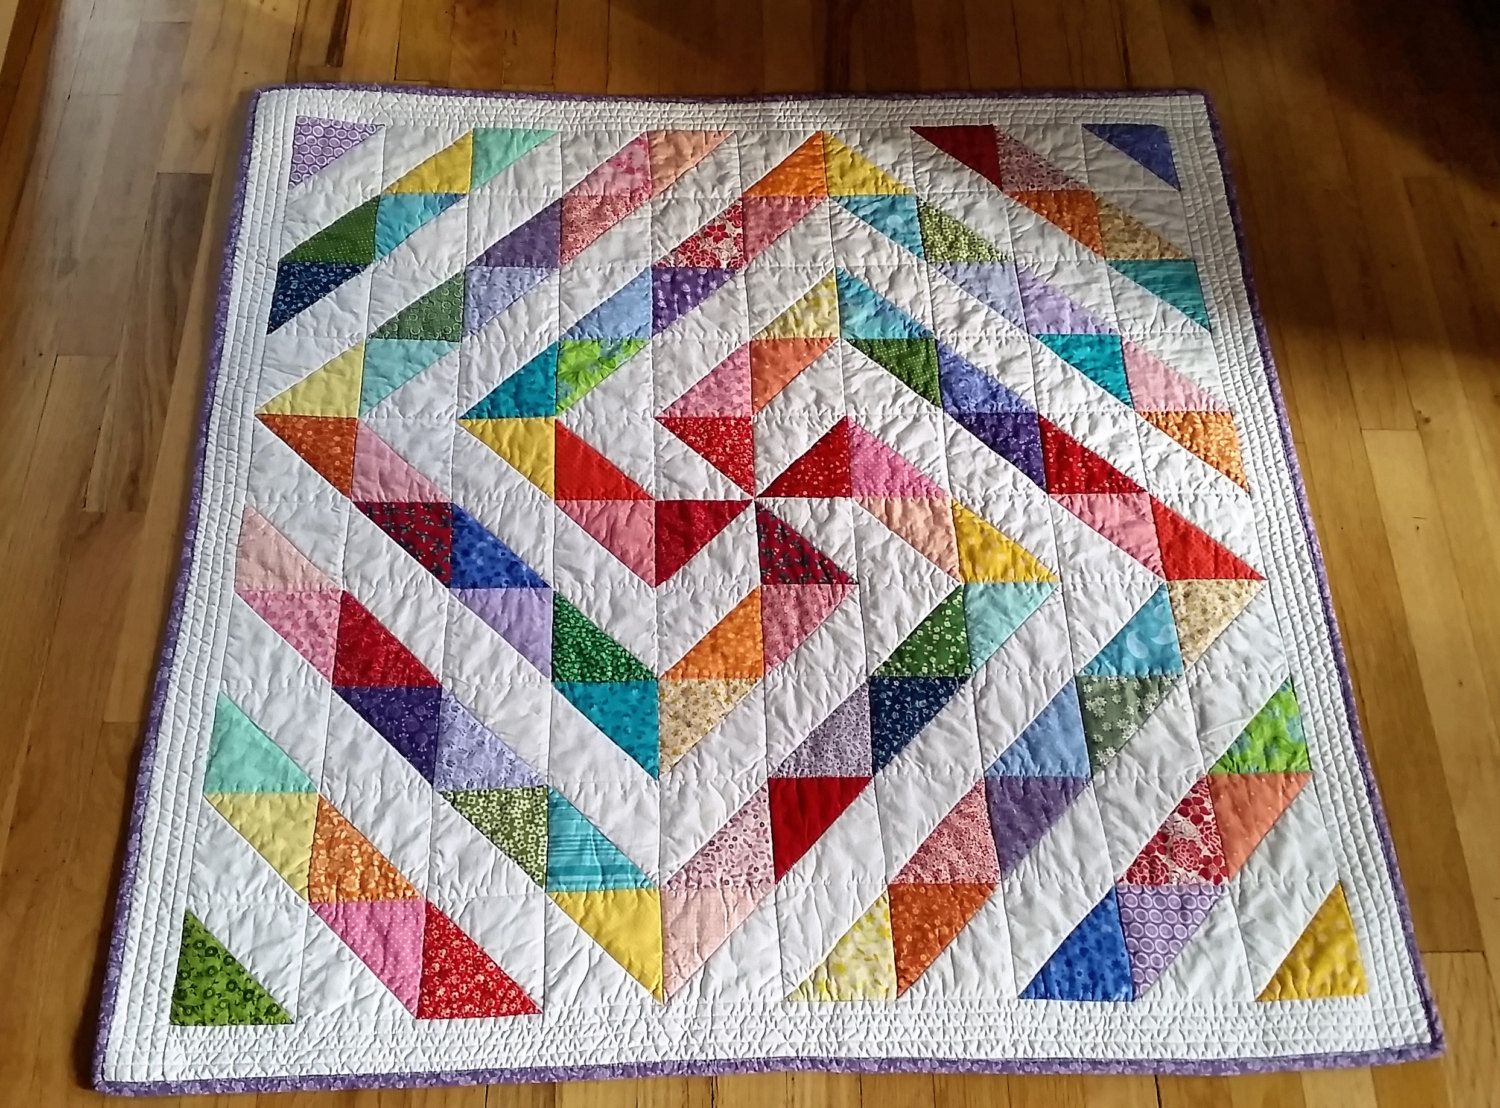 bd7cdb1d89cf7 Rainbow Baby Quilt/Colorful Baby Quilt/Pinwheel Swirl Baby Quilt ...